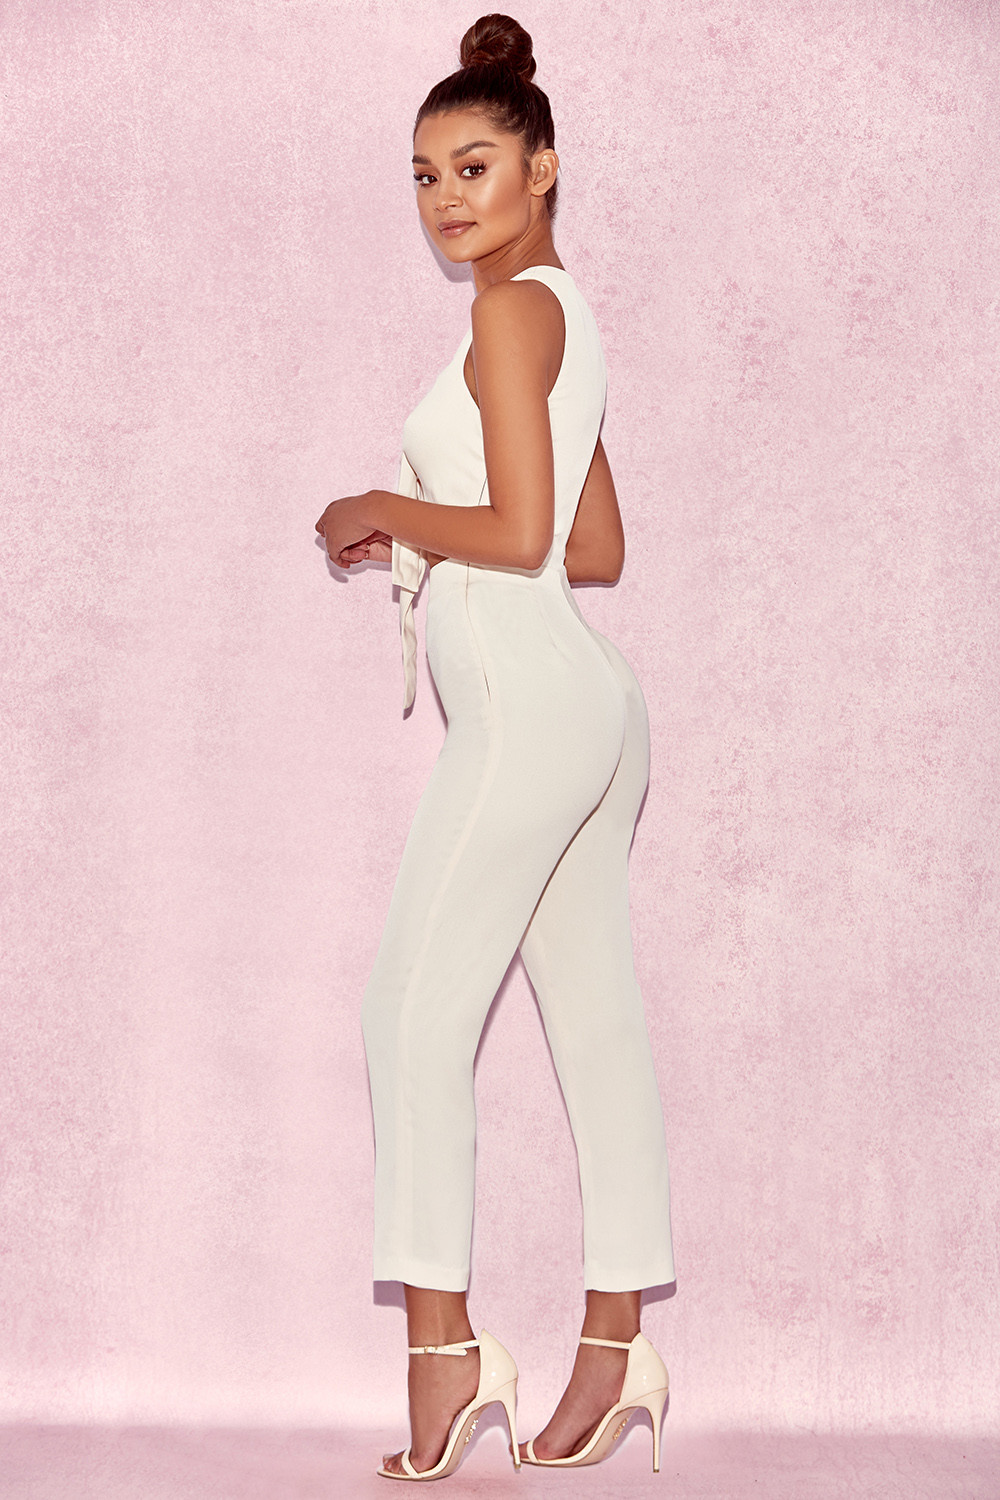 03b3364abe6 Goya Cream Crepe Knotted Front Jumpsuit. View larger image. View larger  image. View larger image